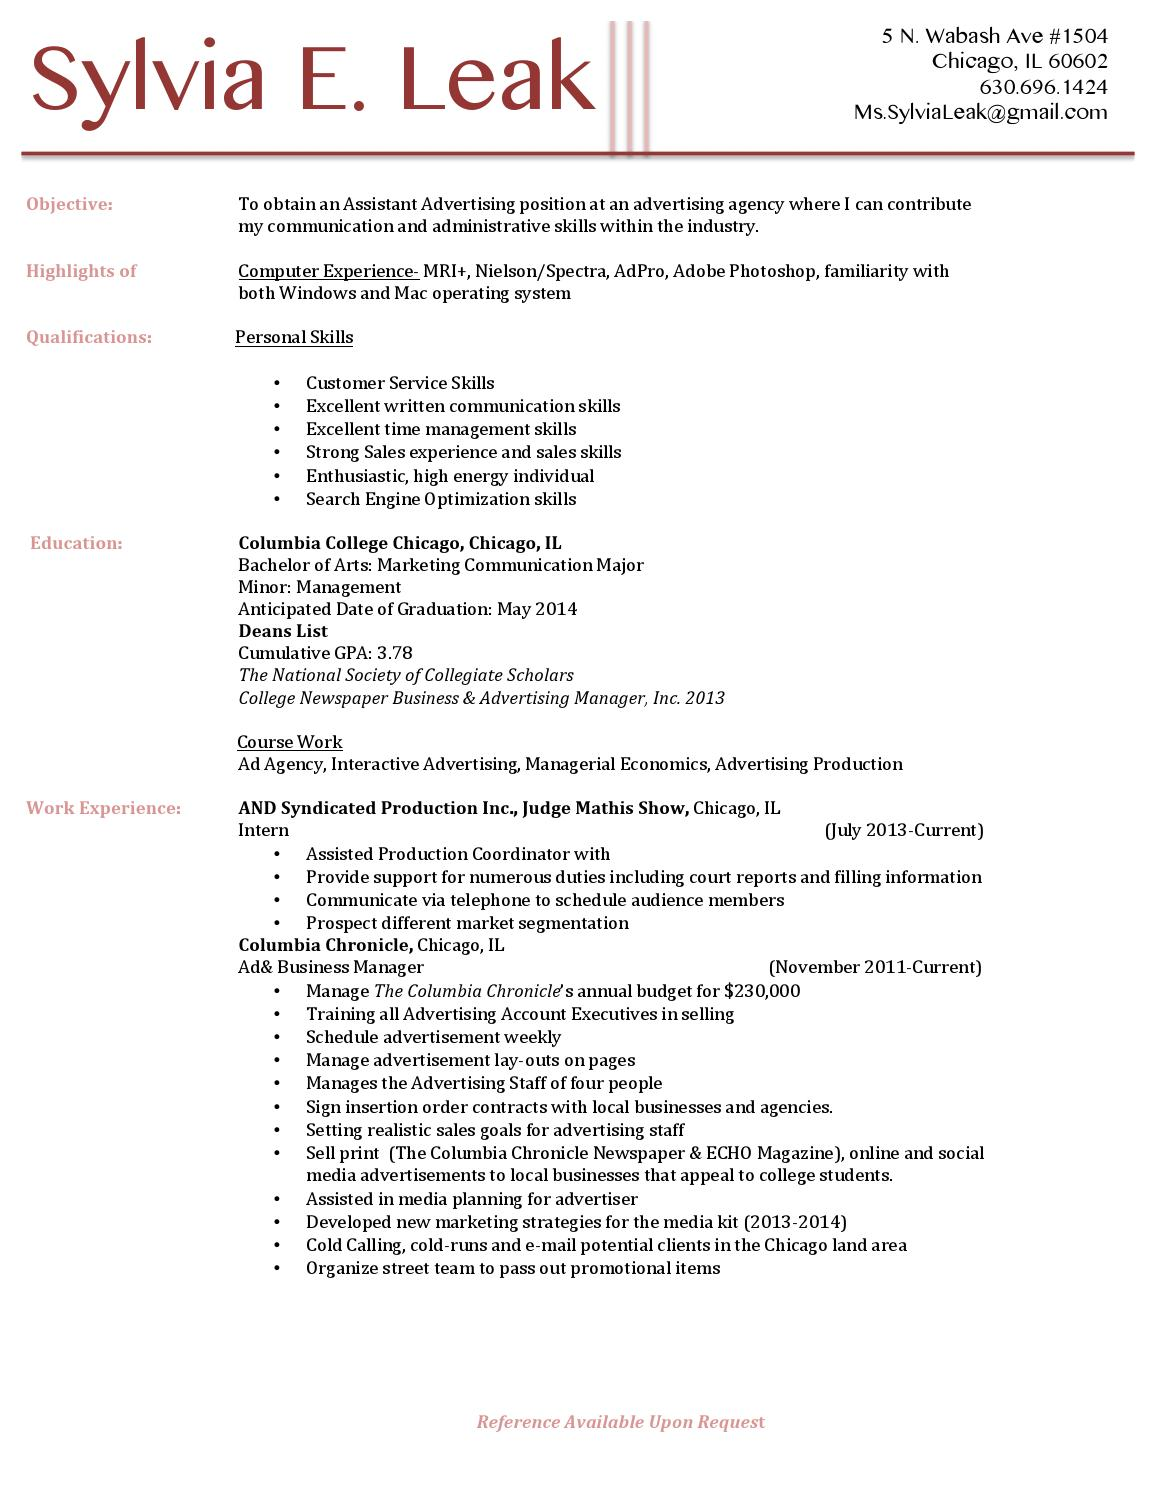 Search Engine Optimization Resume Examples Resumè By Sylvia Leak Issuu